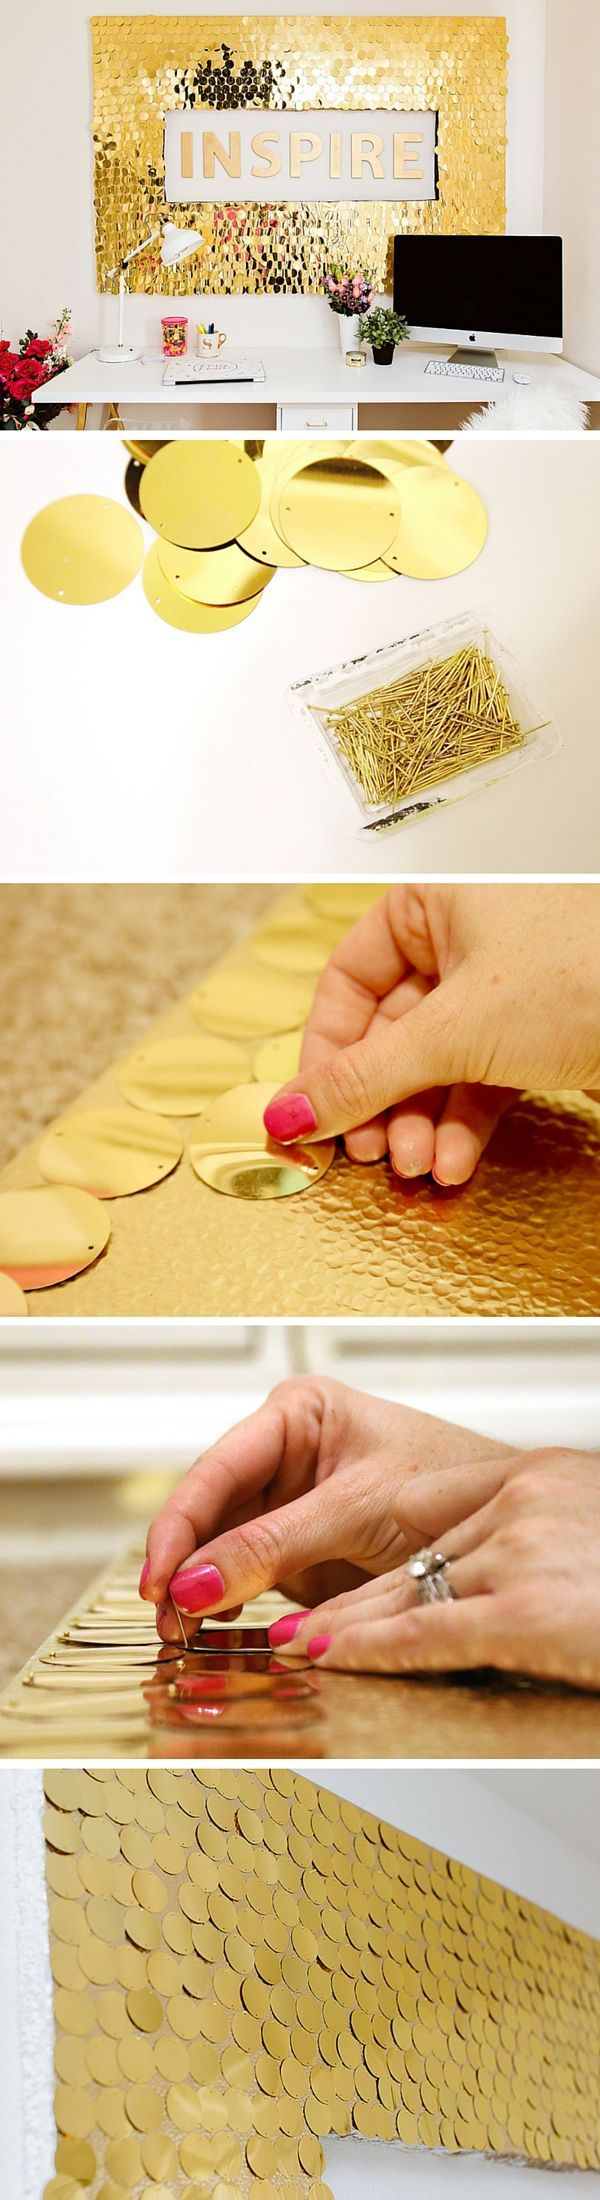 15 diy projects to make your home look classy sequin wall wall